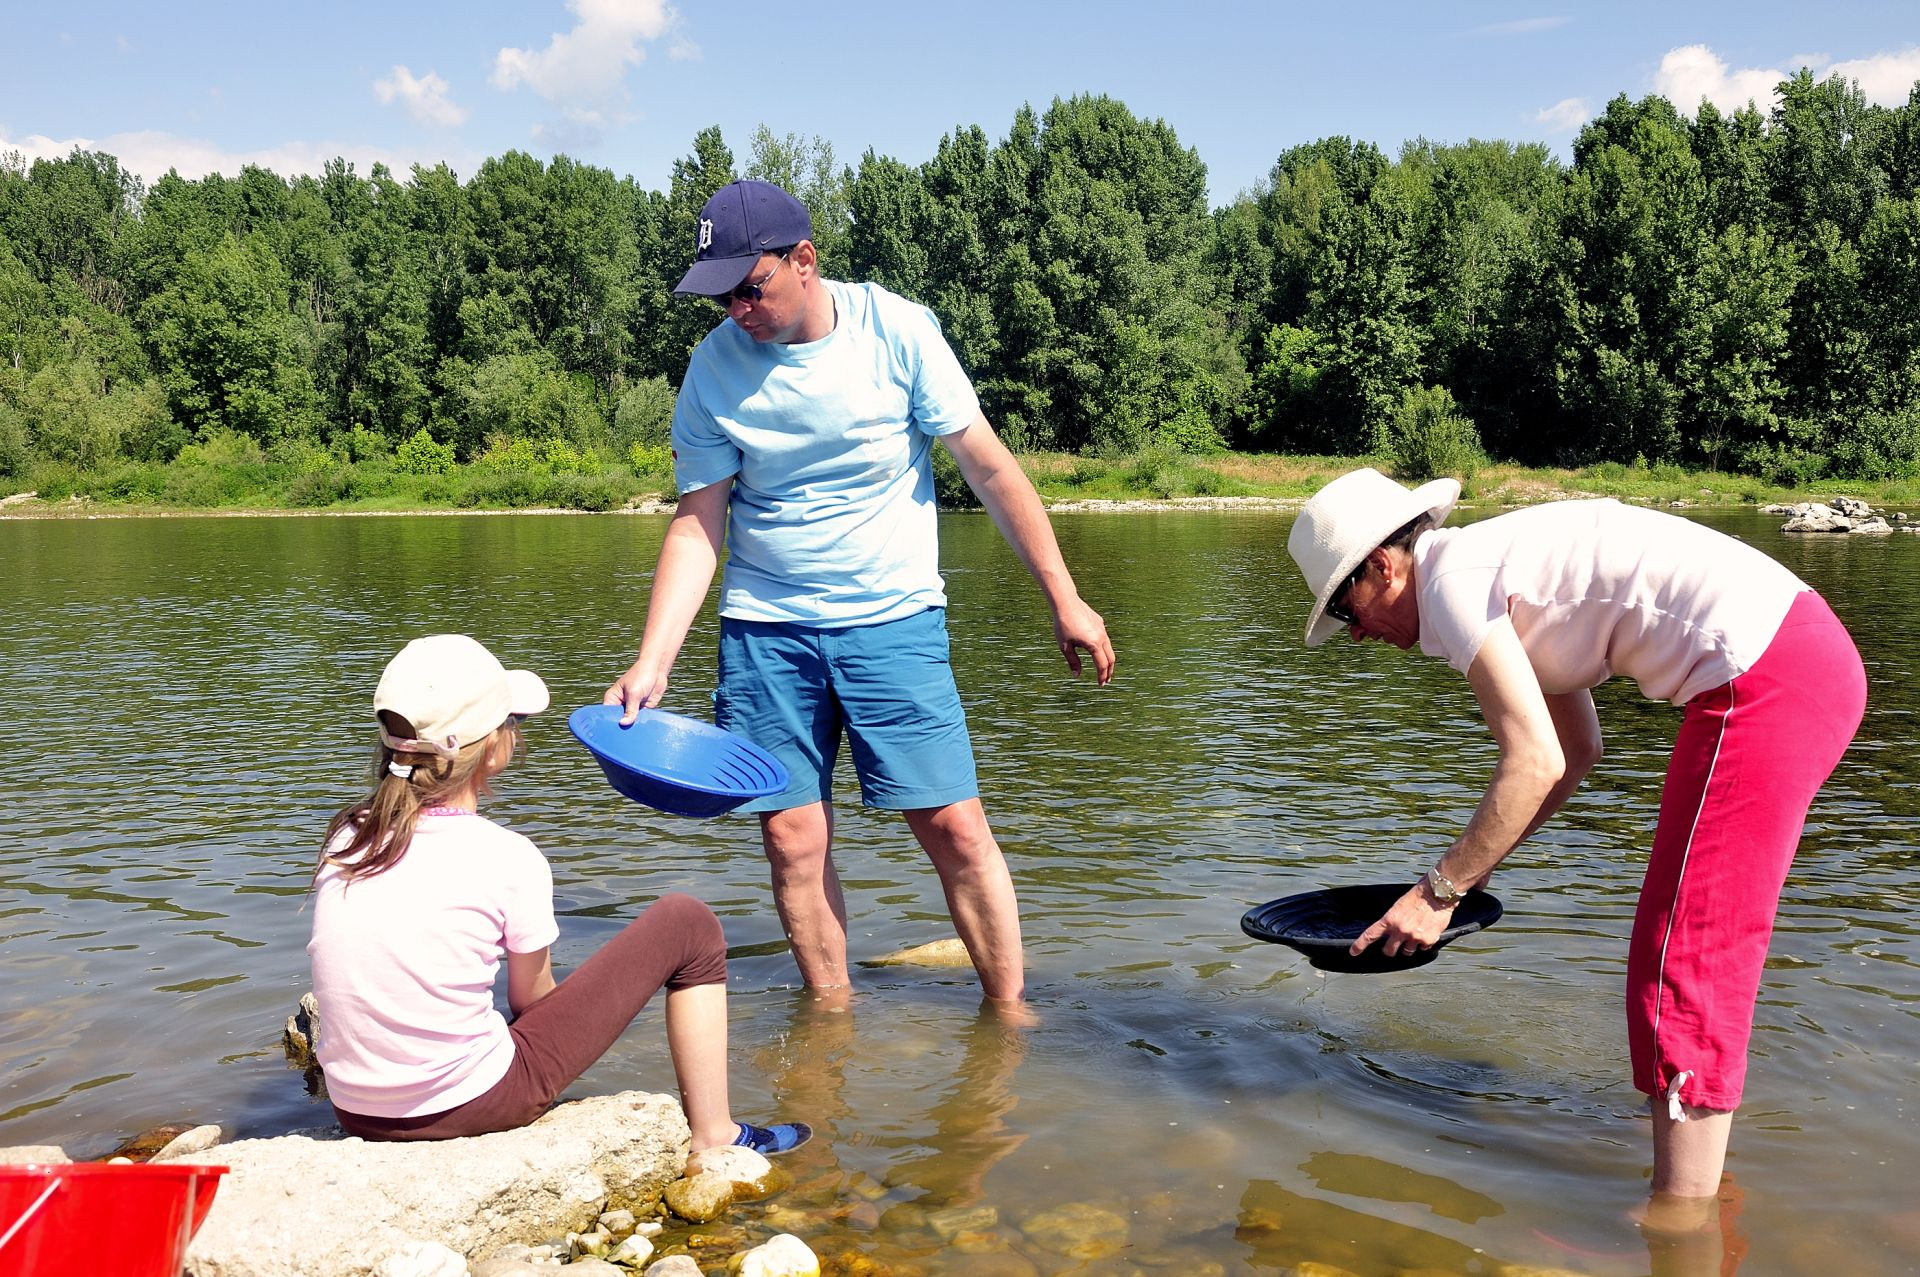 CARDET, FRANCE - MAY 25: Gold prospectors of all ages on the banks of the Gardon River Gard French gold coming down from the Cevennes, may 25, 2015.